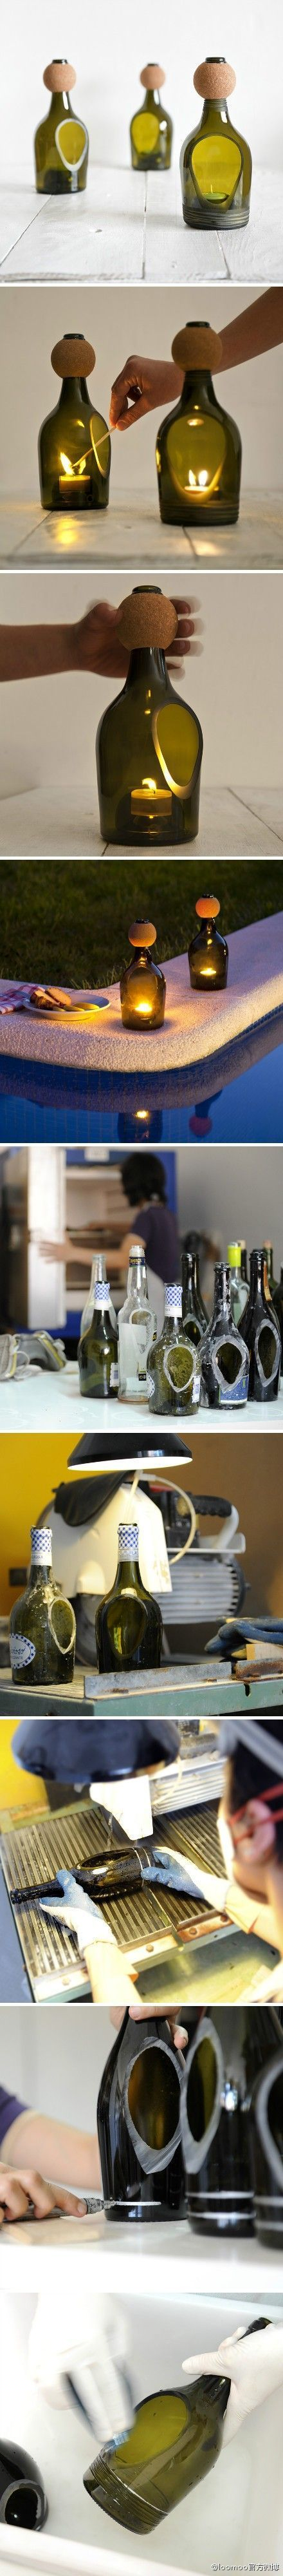 Simple DIY Wine Bottle Lights